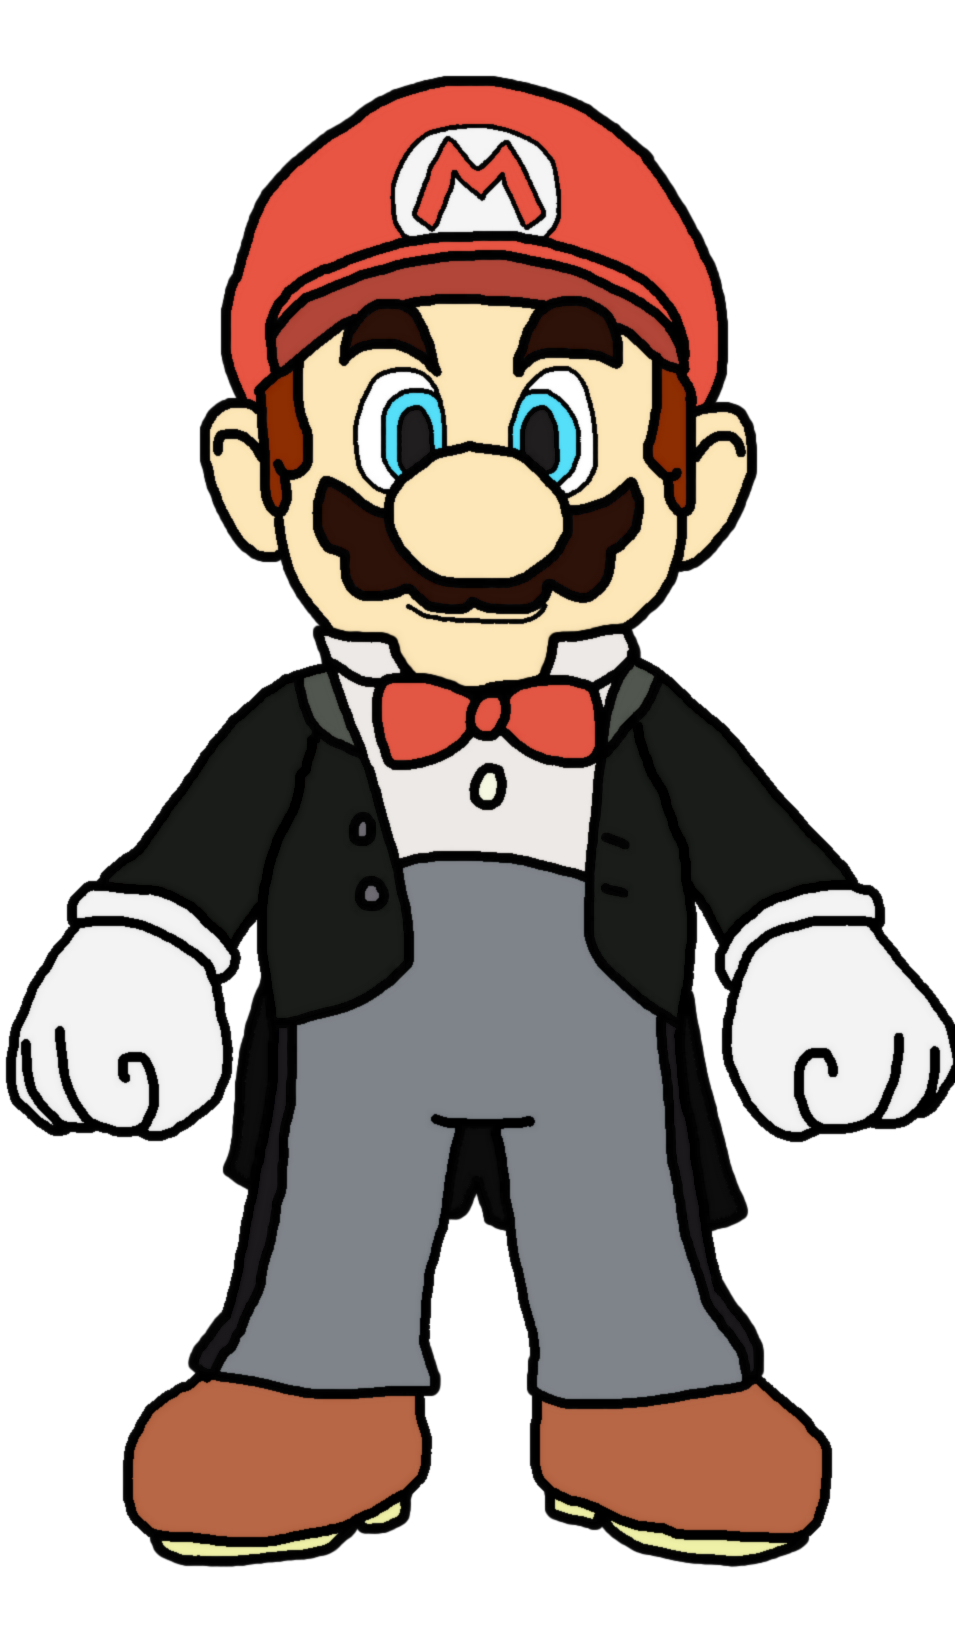 Mario conductor by katlime. Pilot clipart person